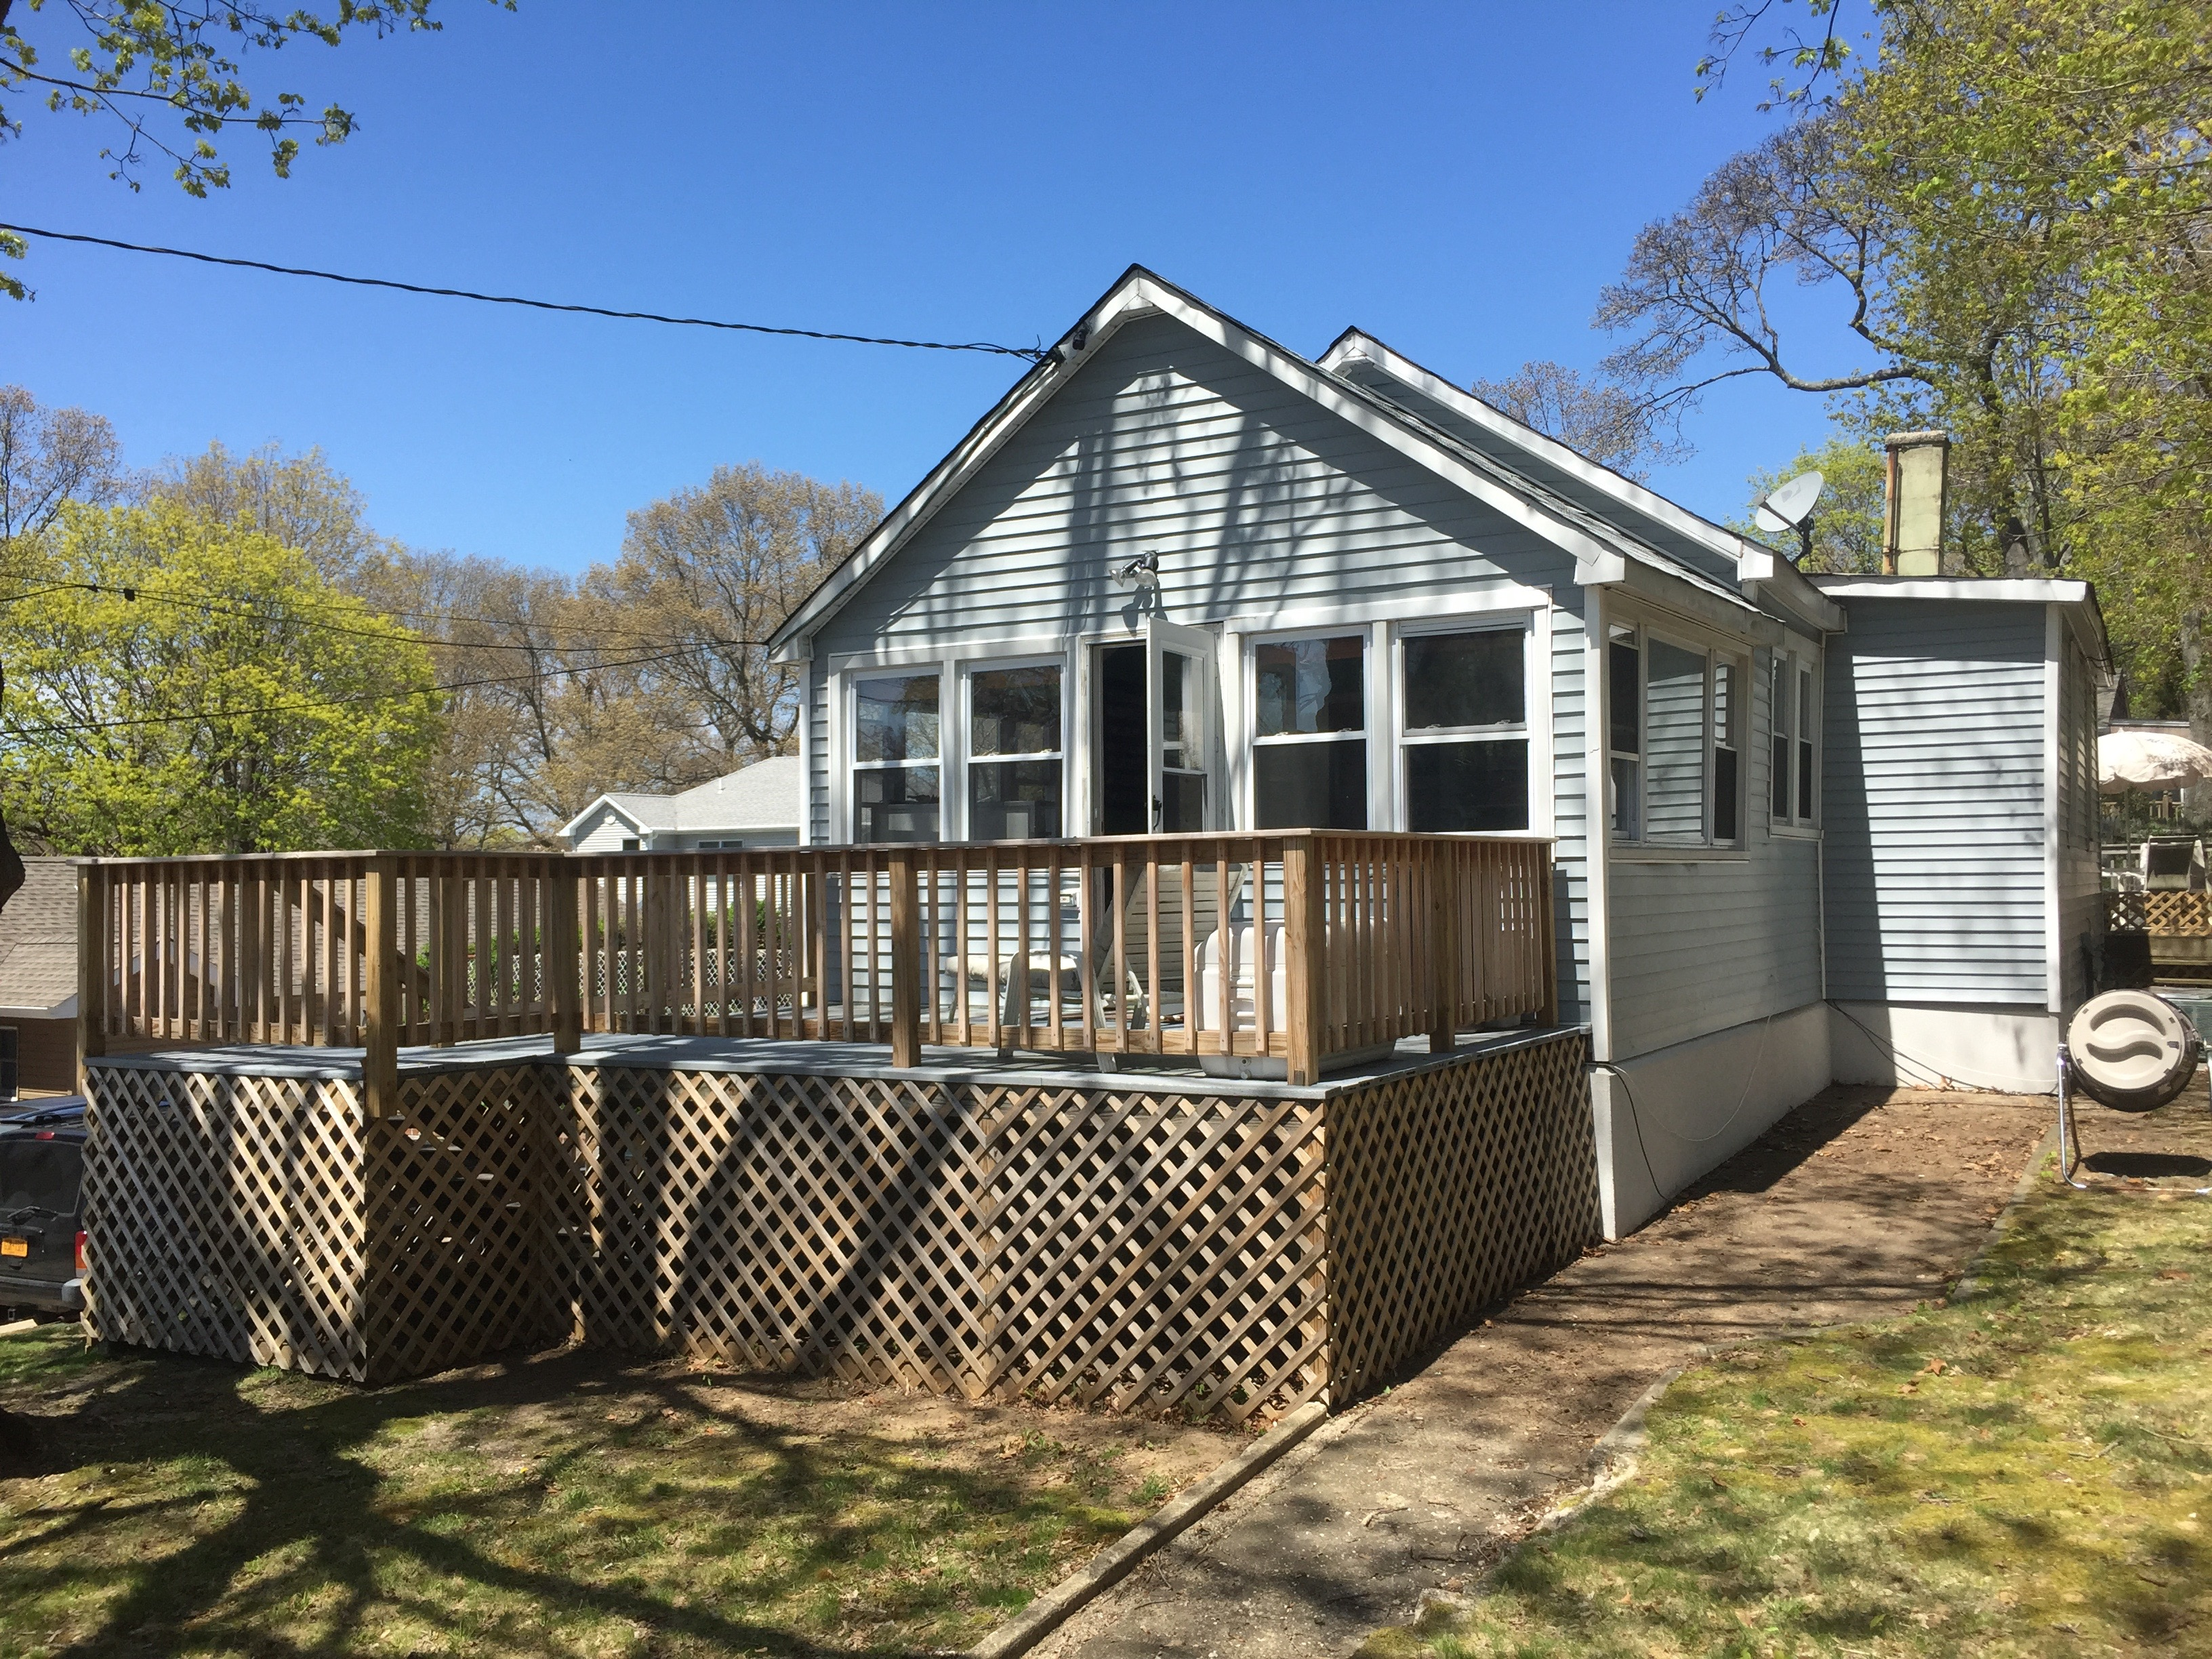 Single Family Home for Sale at Ranch 187 Magua St Ronkonkoma, New York 11779 United States